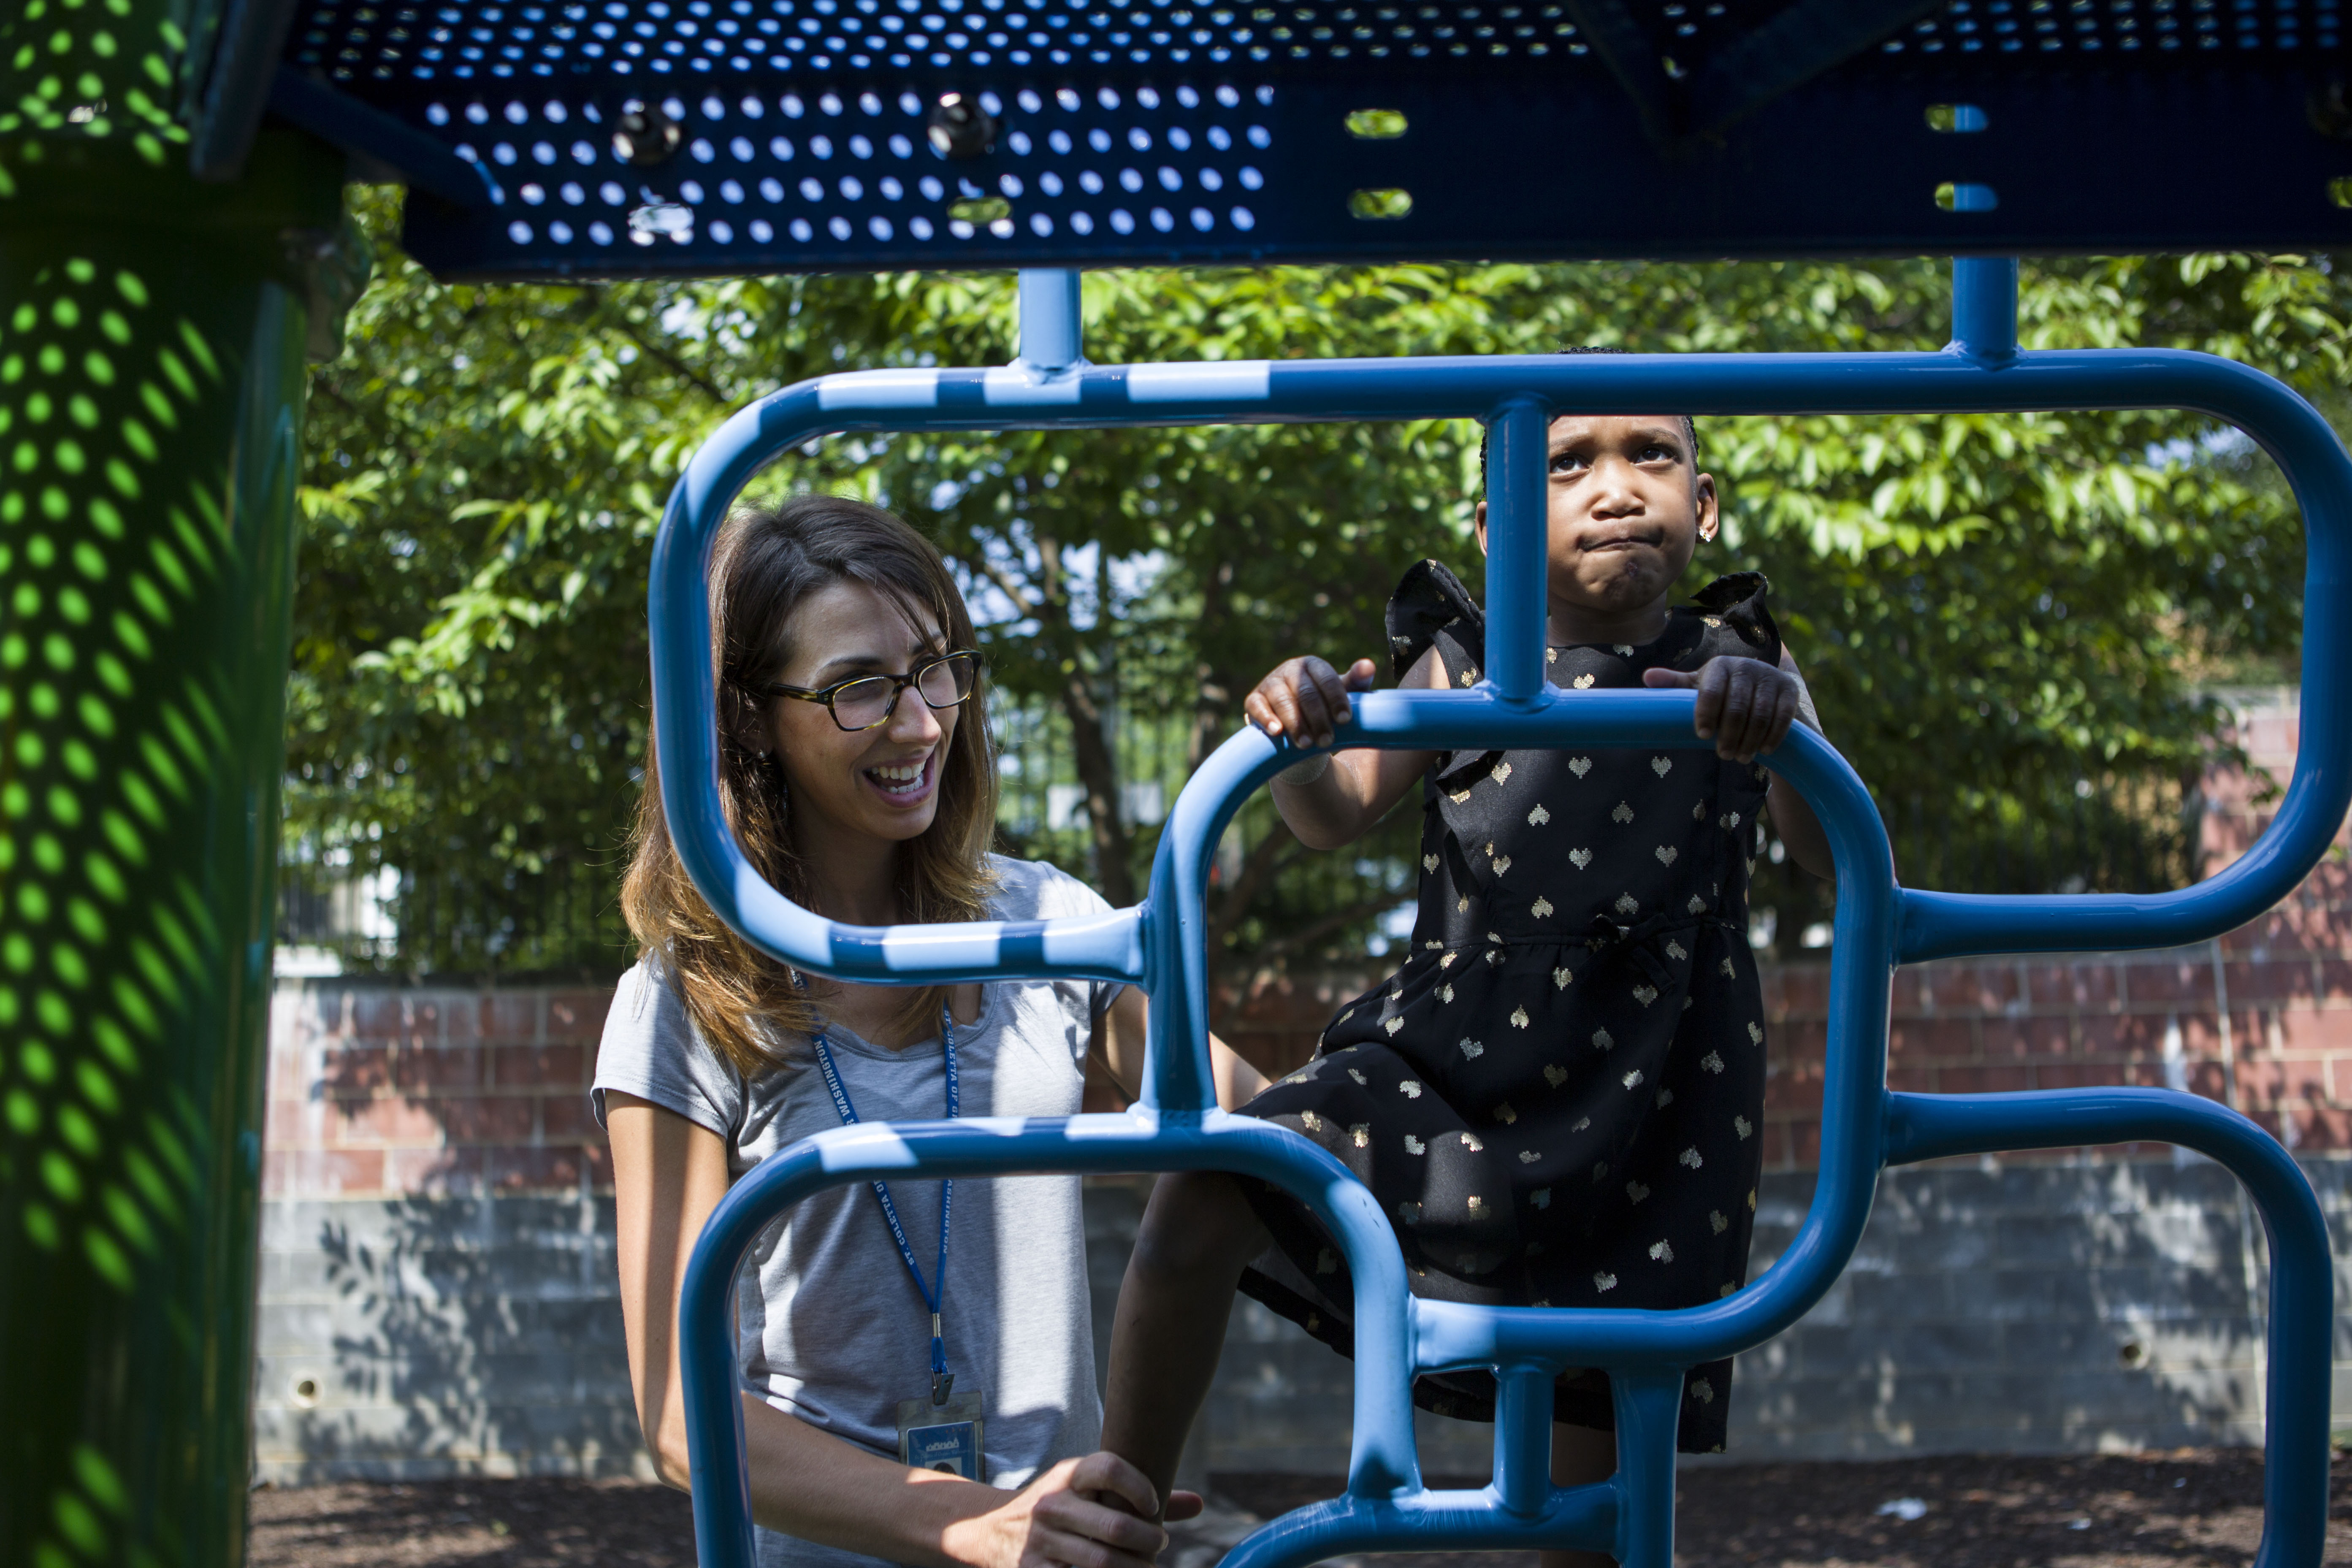 Physical therapist Lauren Fery spots student Kamille Davis as she climbs up the playground ladder at St. Coletta. MUST CREDIT: Washington Post photo by Calla Kessler.